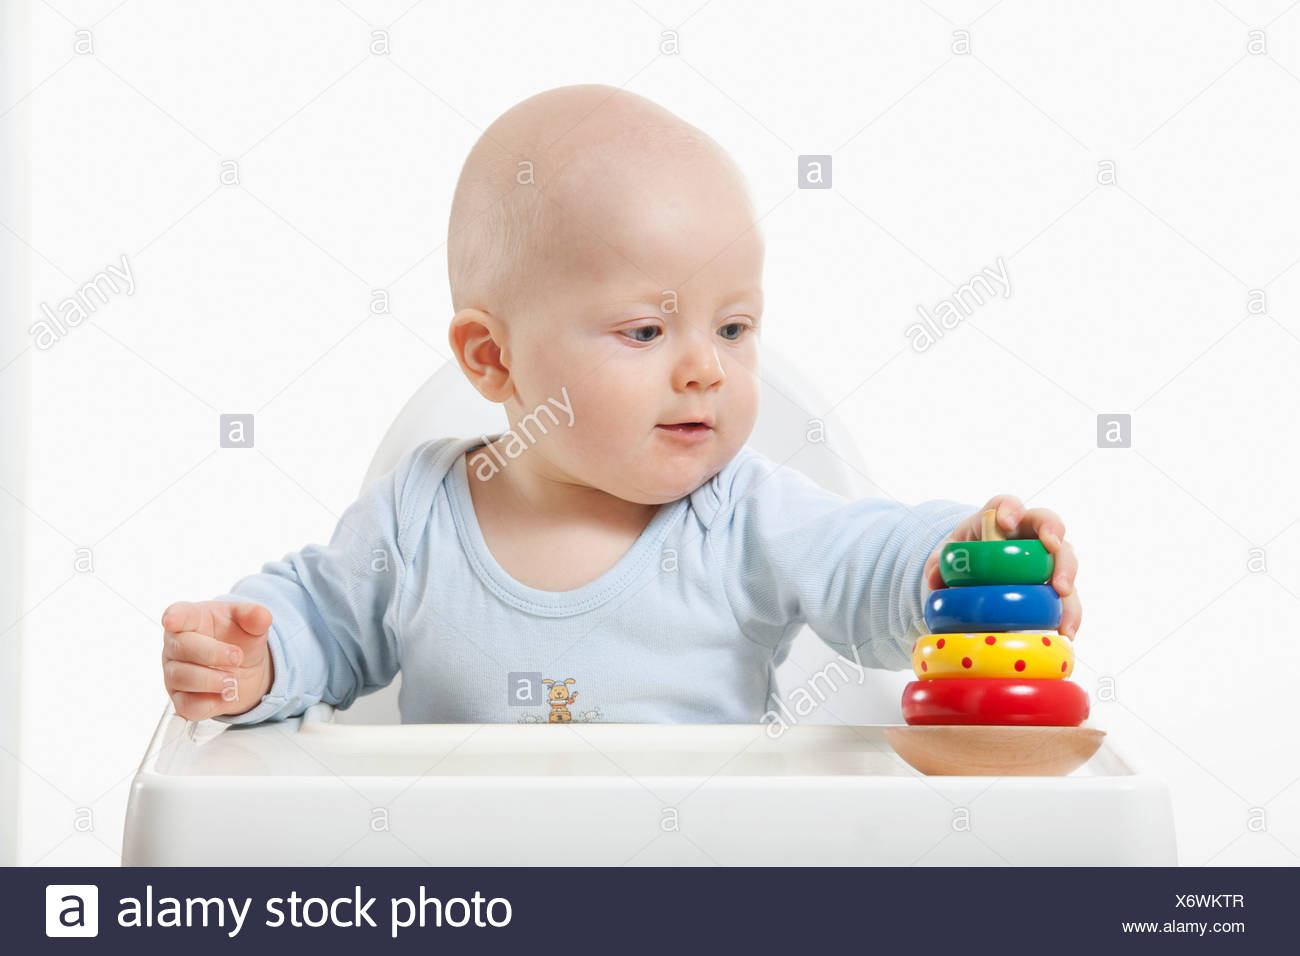 Baby Boy 6 11 Months Playing With Toys Stock Photo 279618215 Alamy